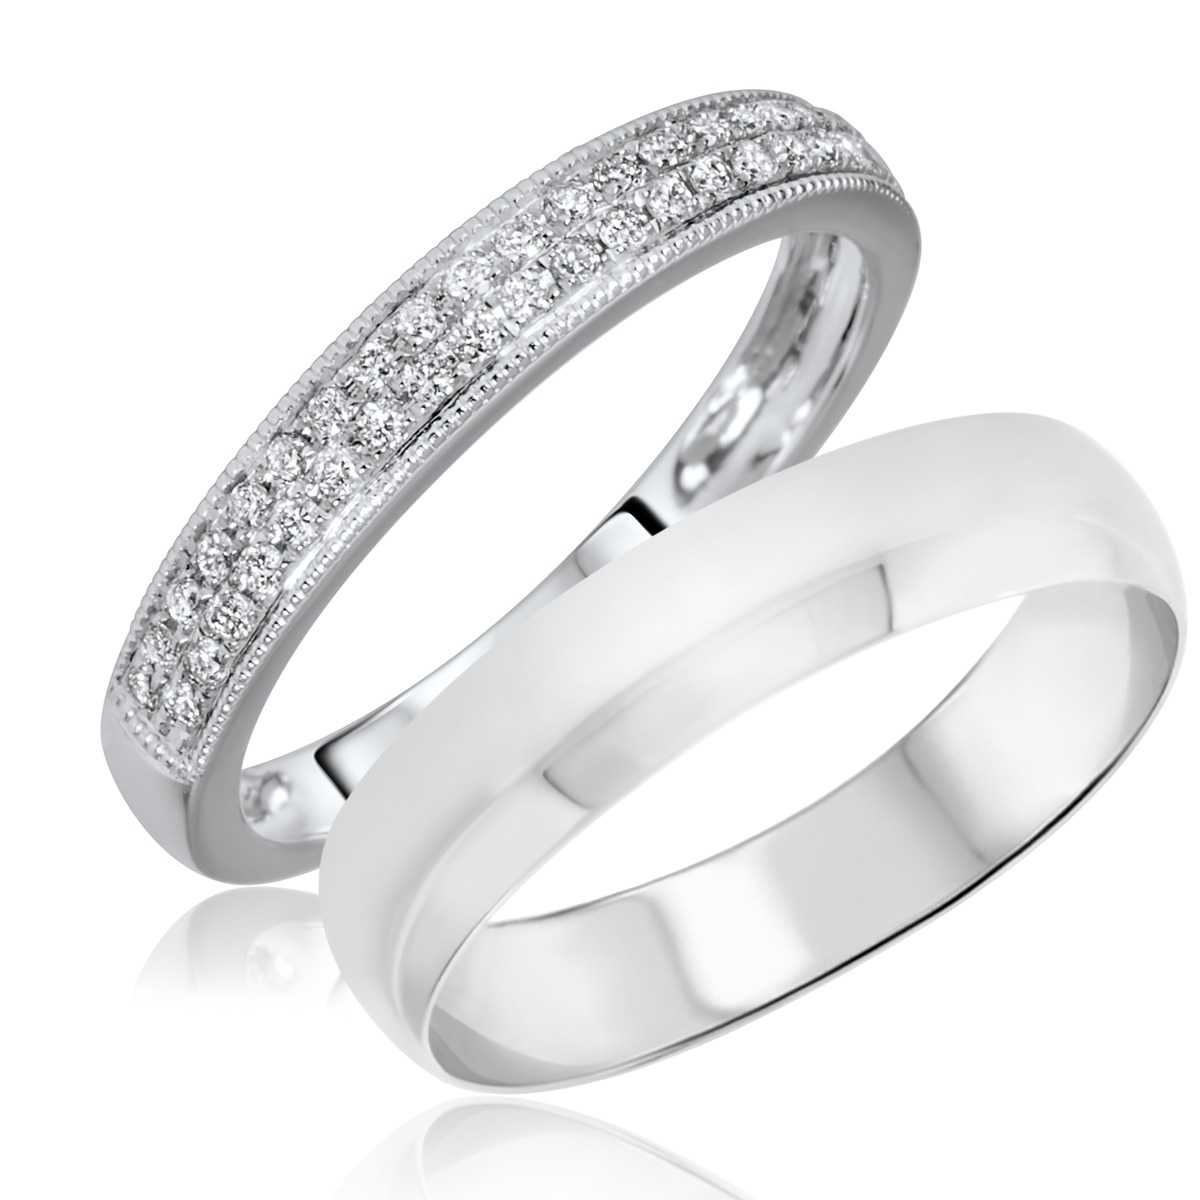 1/4 Carat T.W. Round Cut Diamond His and Hers Wedding Band Set 14K White Gold